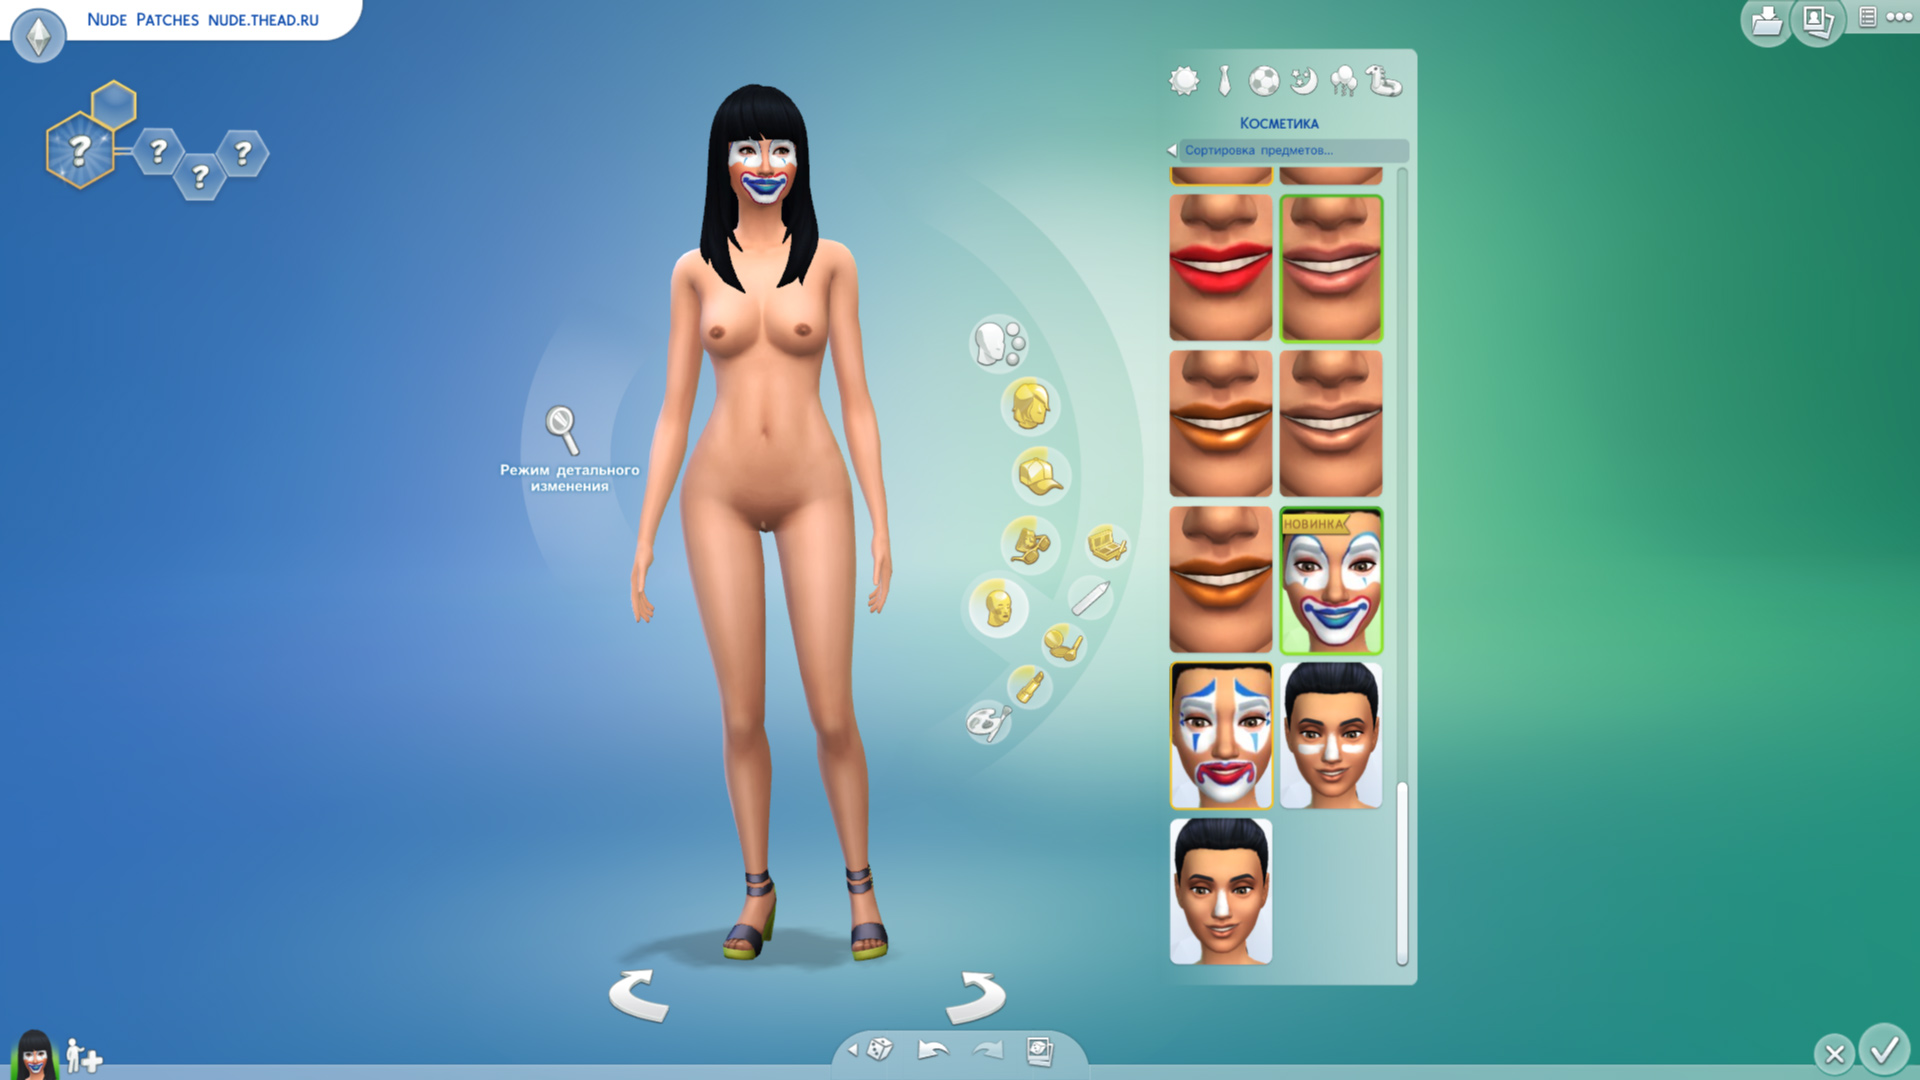 Die sims 3 nude patch nude tube